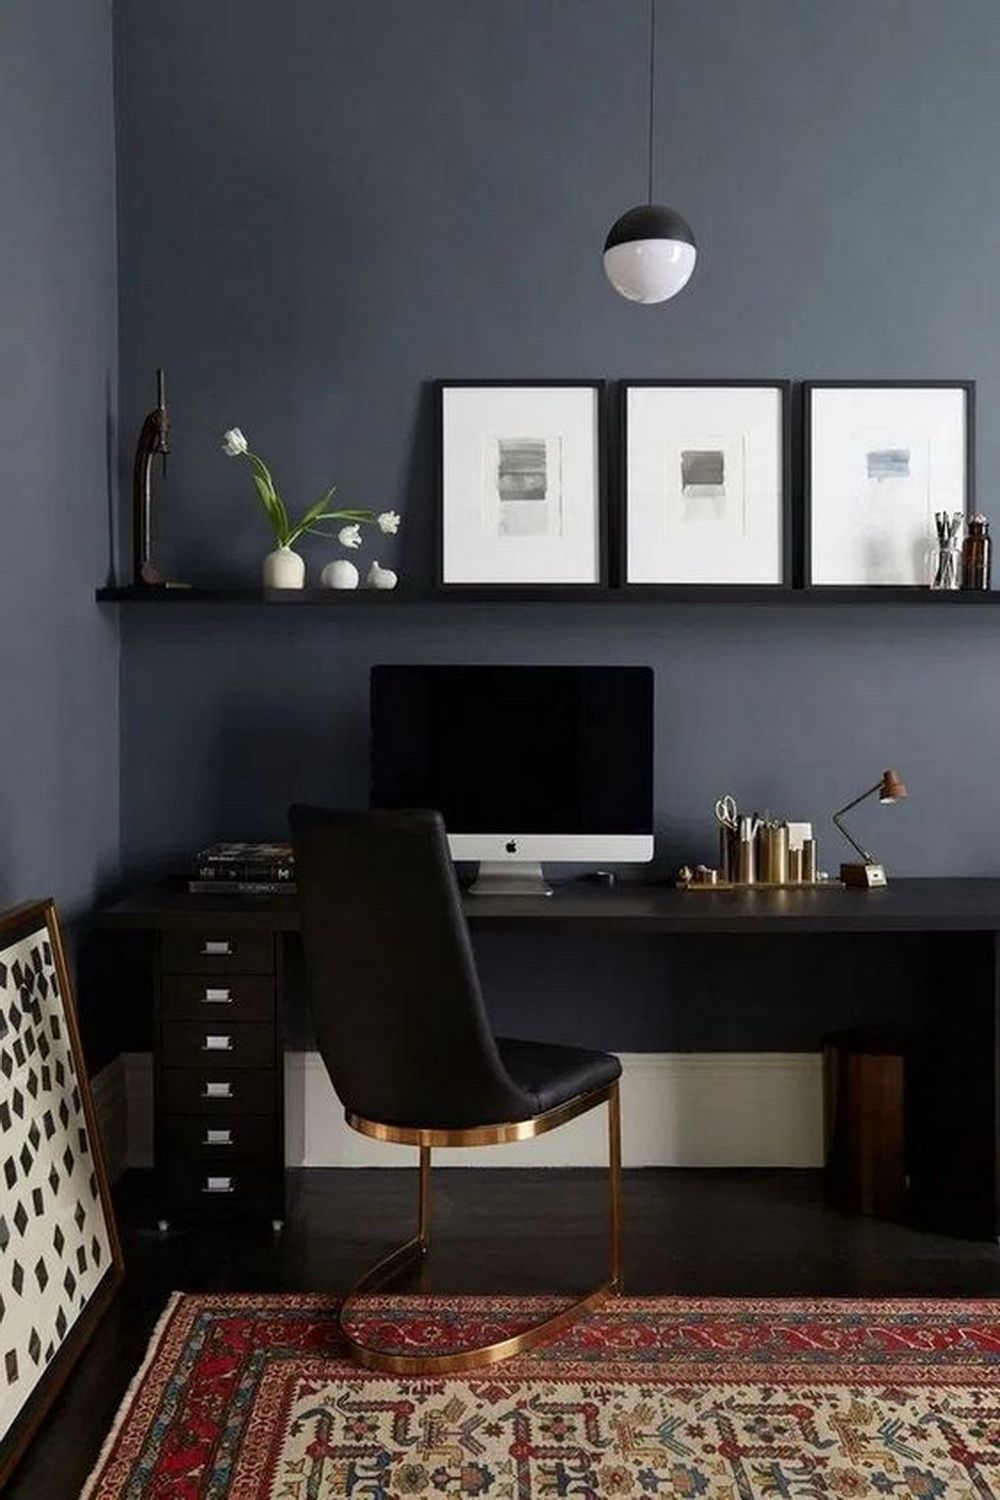 25 Modern Home Decoration Ideas With Simple Office Room